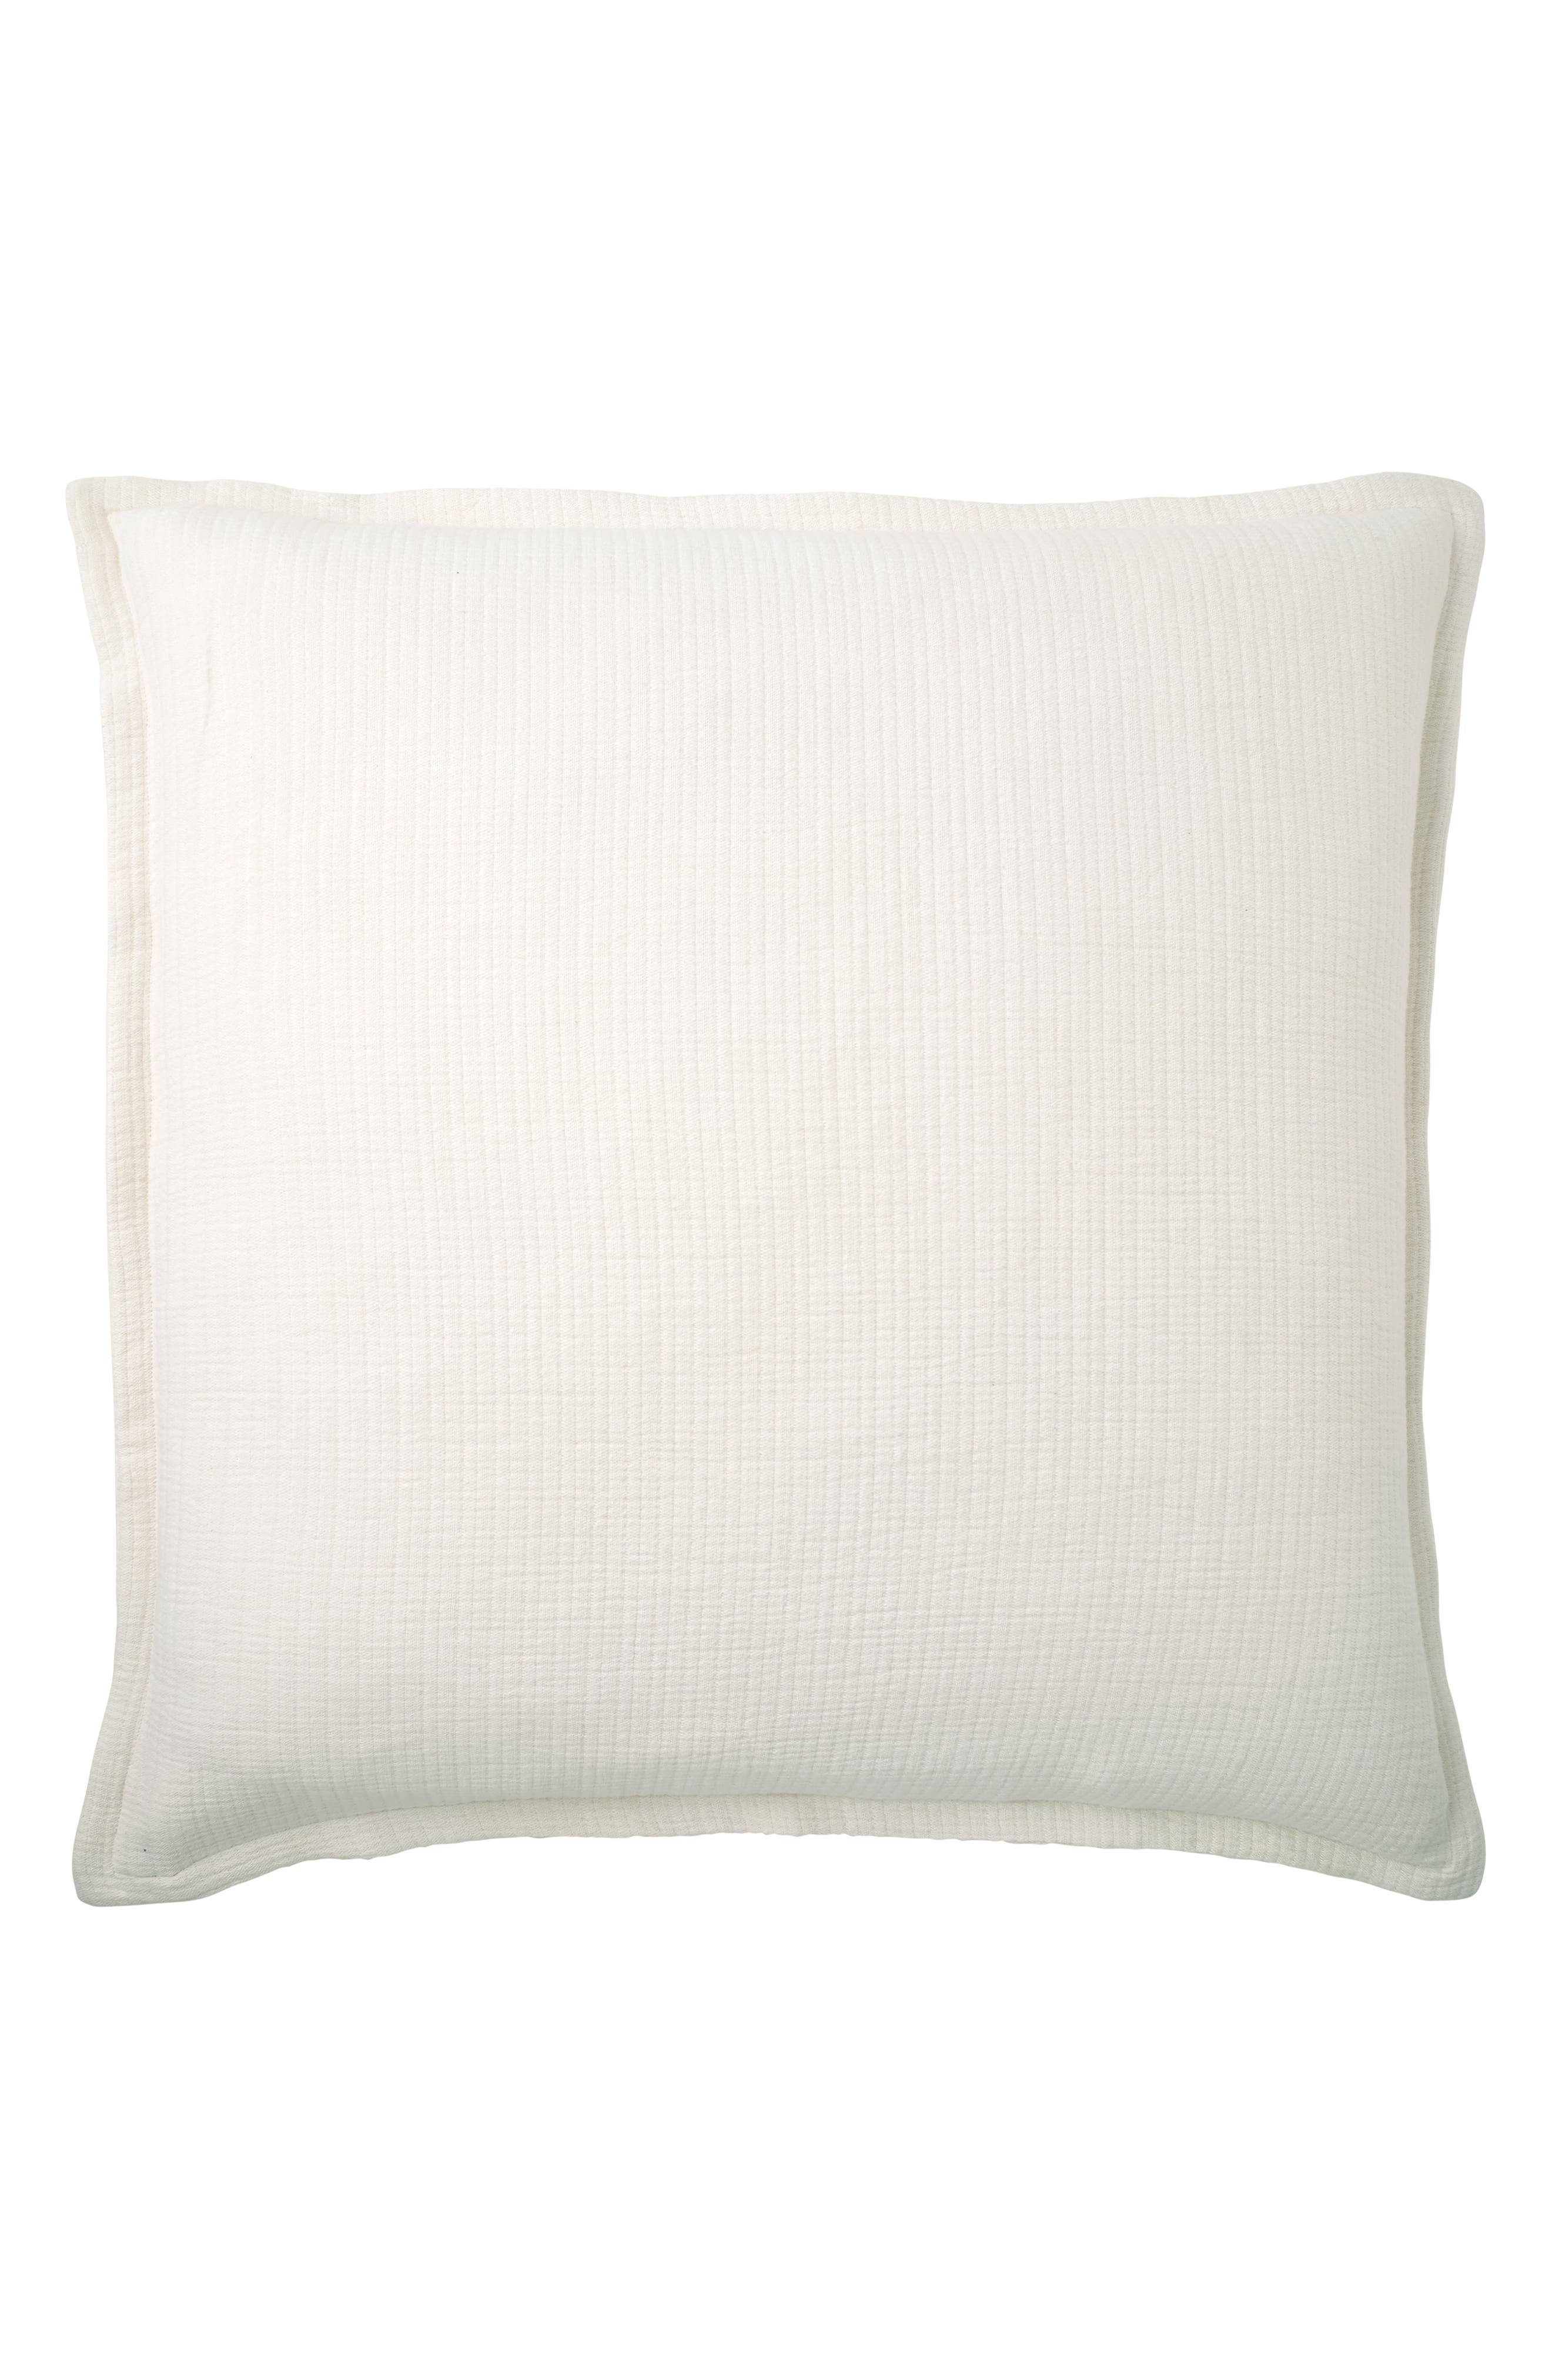 DKNY Pure Stonewashed Euro Accent Sham, Main, color, WHITE